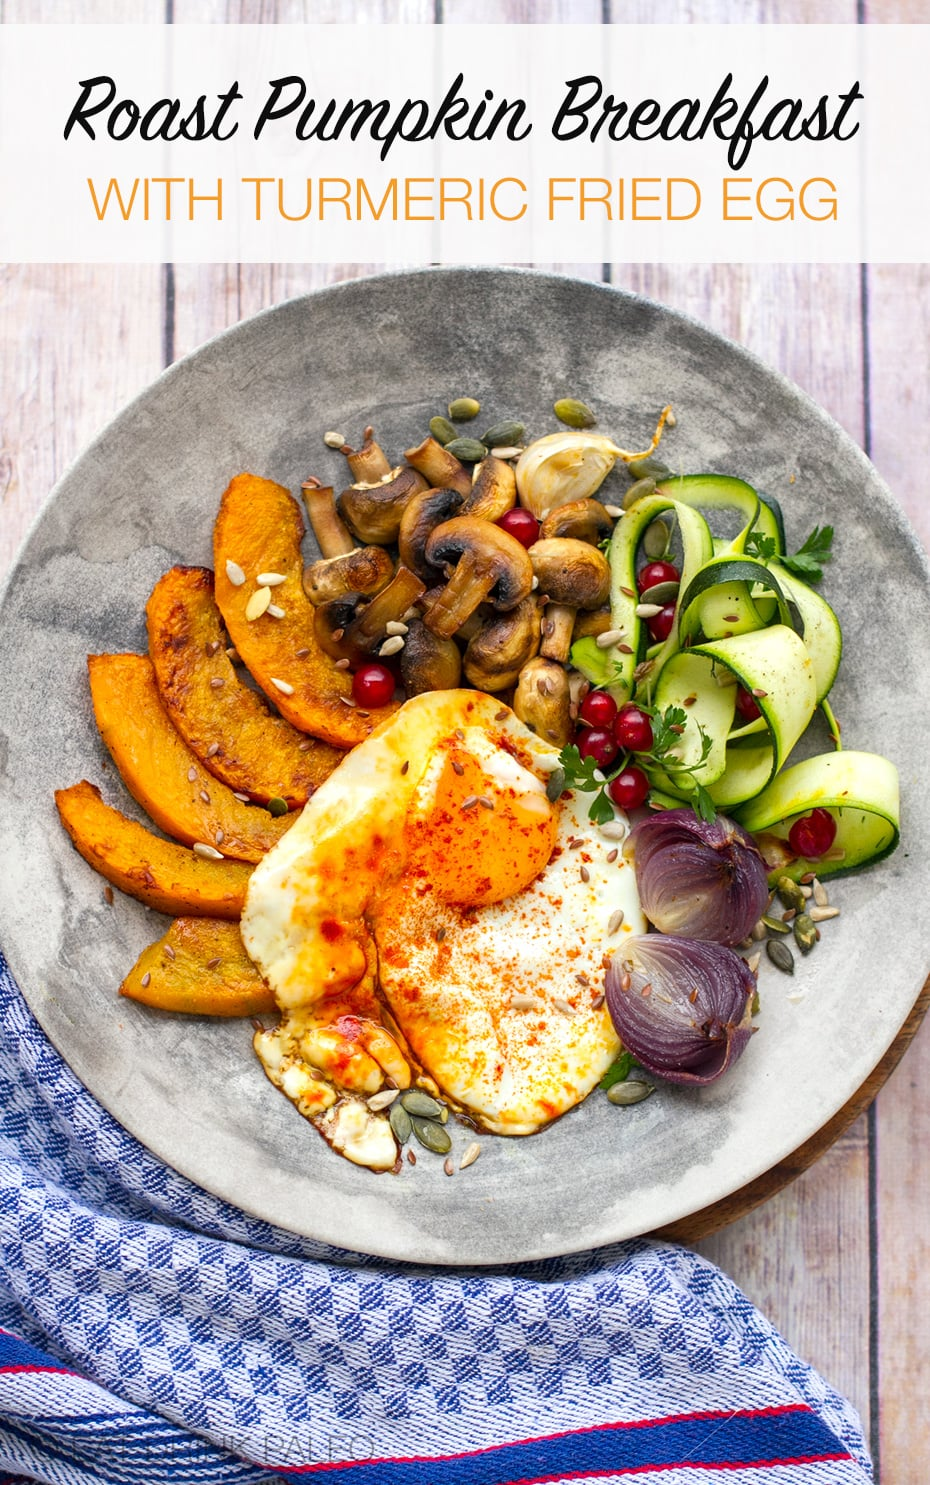 Fall harvest breakfast of roasted pumpkin, mushrooms and turmeric fried egg. Perfect weekend brunch meal that is paleo and Whole30 friendly.